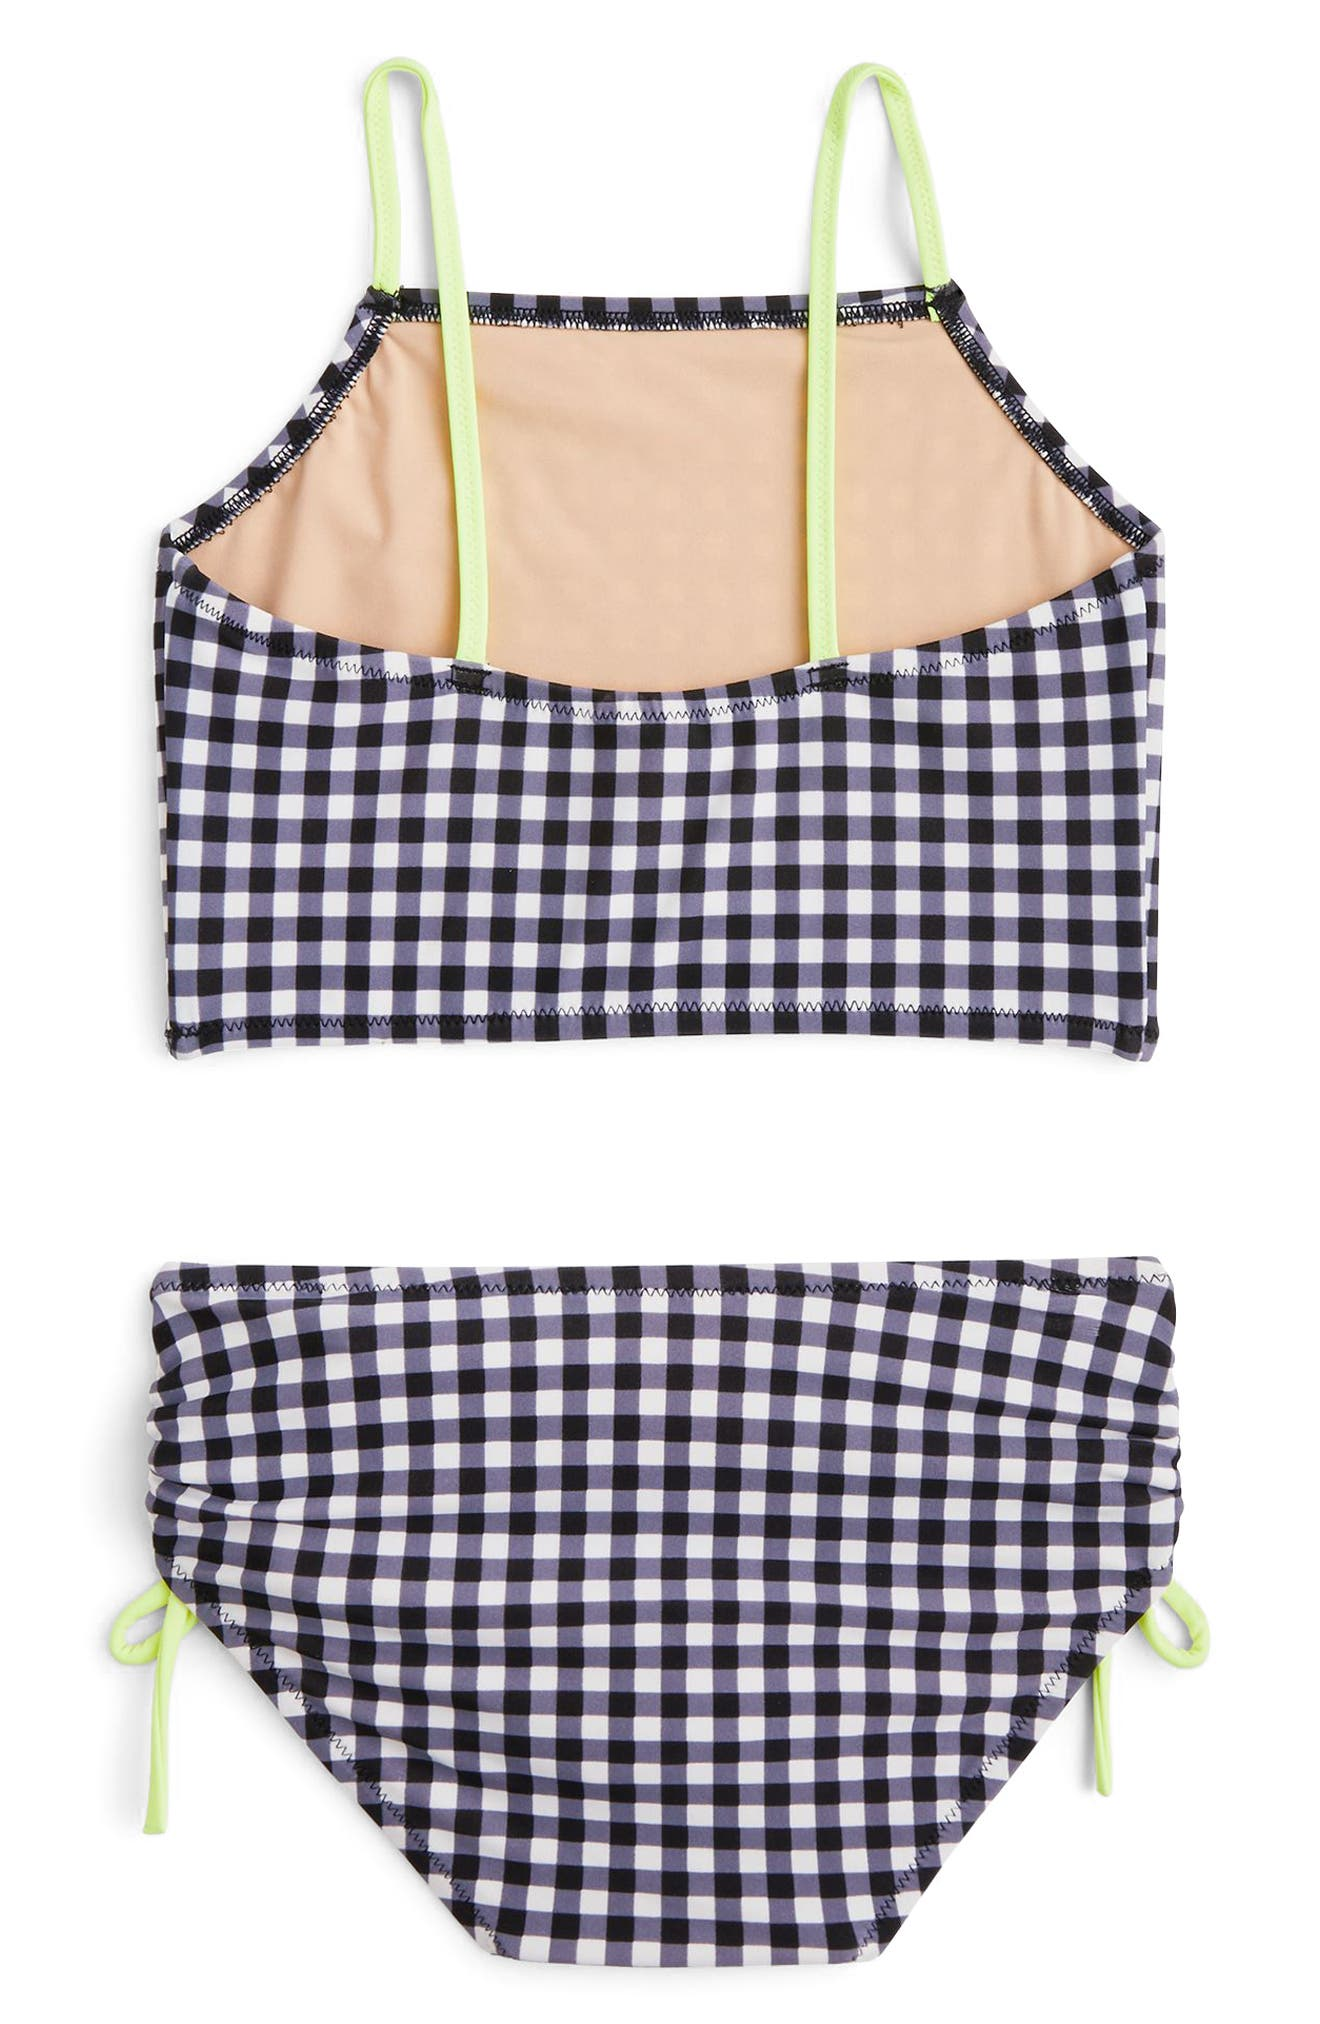 CREWCUTS BY J.CREW,                             Leia Gingham Two-Piece Swimsuit,                             Alternate thumbnail 2, color,                             001